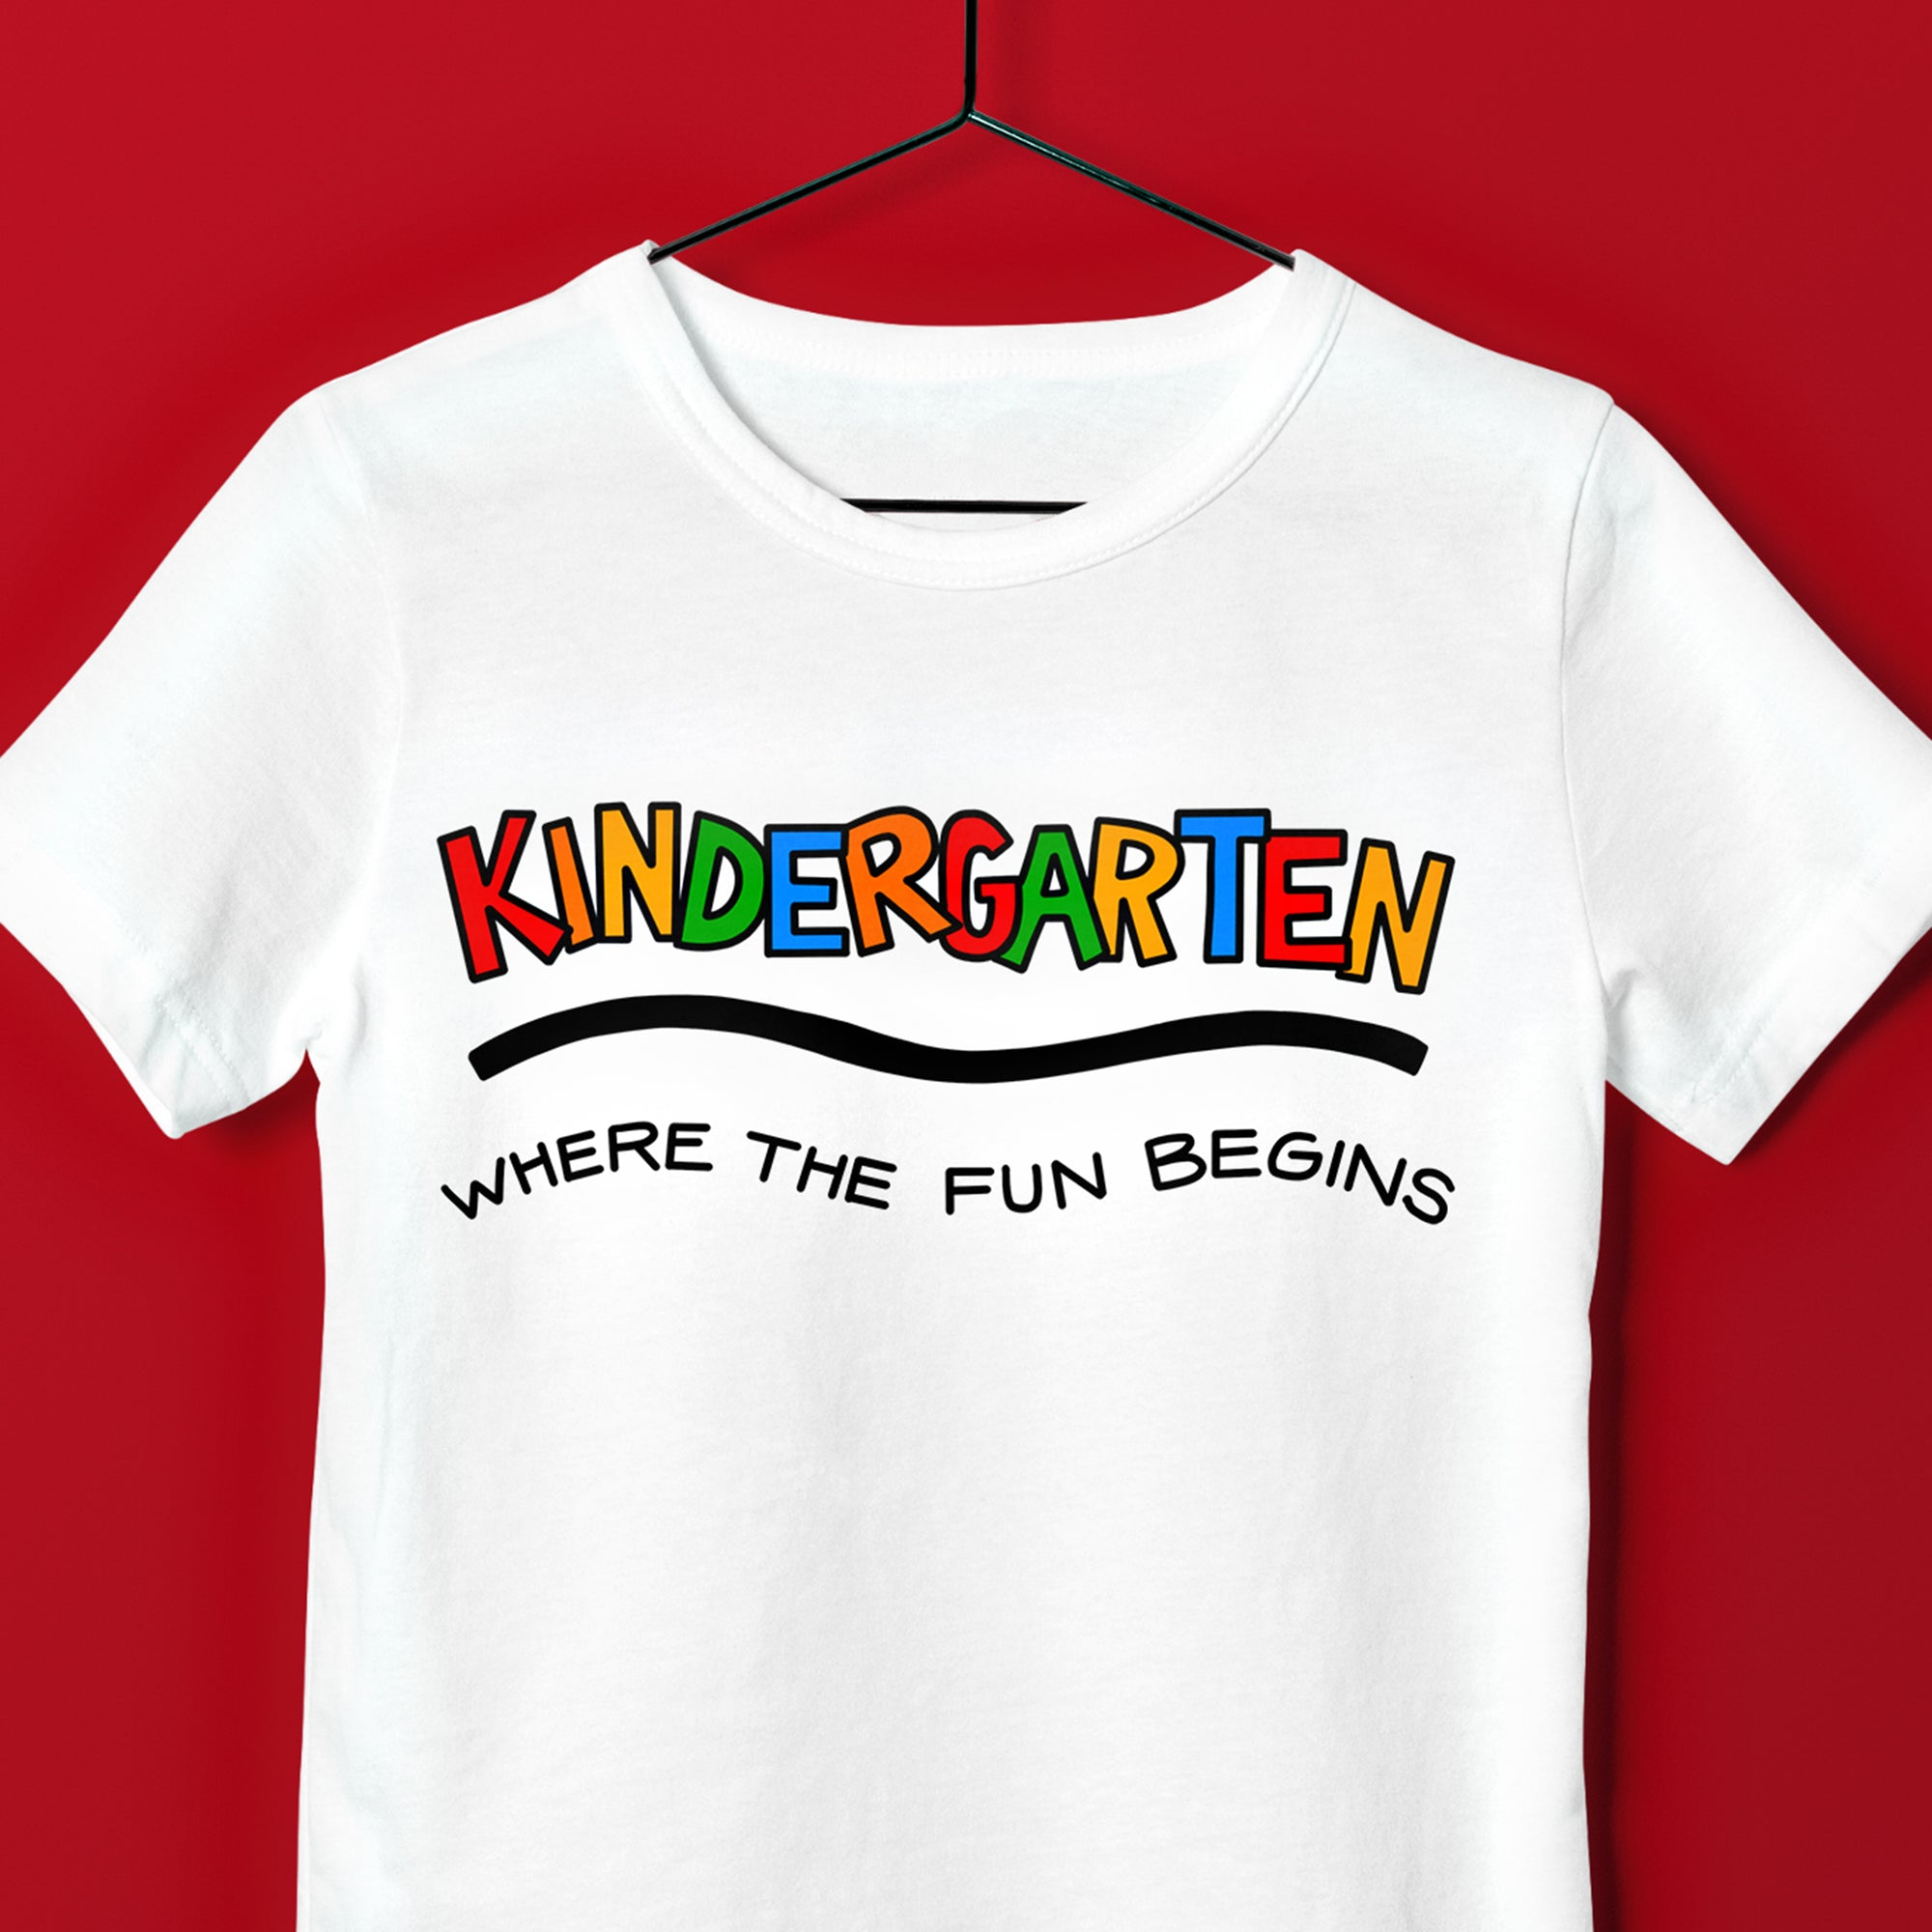 Cute Kindergarten SVG, Kindergarten SVG File, First Day of Kindergarten Shirt SVG File Design, Kindergarten Saying SVG, Kindergarten Quote SVG